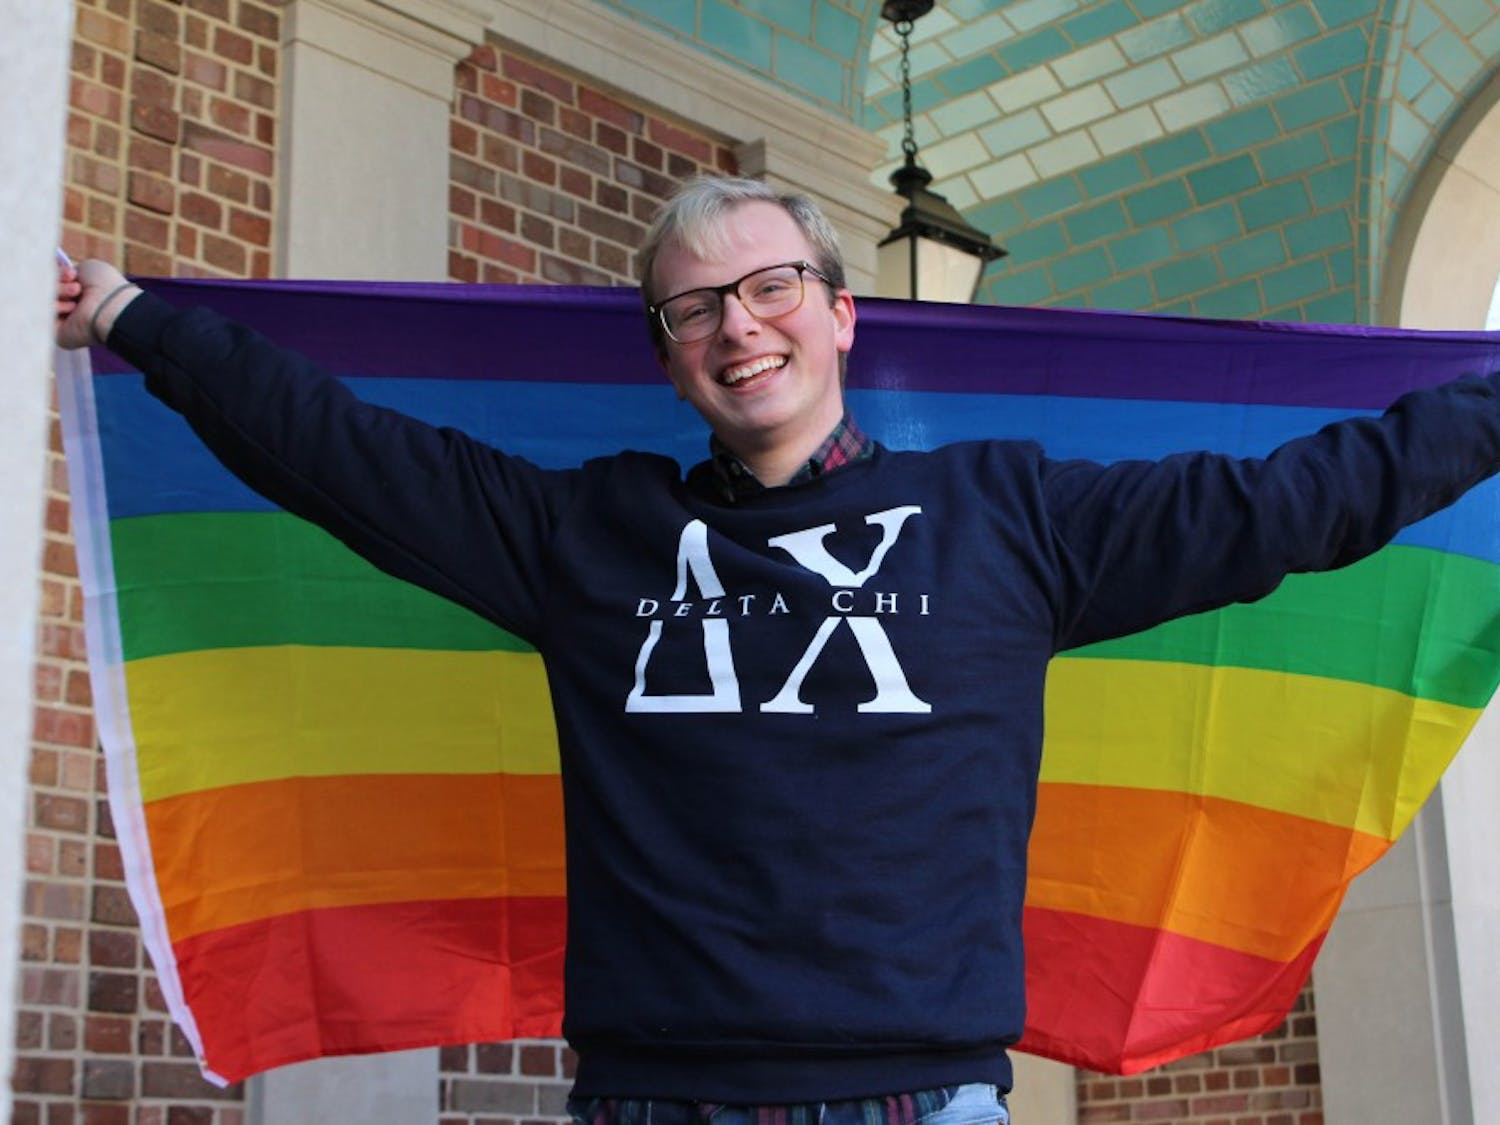 """Sophomore Ryker Smith, chemistry major, in front of the Morehead-Patterson Bell Tower on Thursday, Jan. 31, 2019. Smith is one of the founding fathers of the Delta Chi fraternity at UNC and a member of the LGBTQ community. Smith says that in his experiences with Greek life he has not experienced homophobia and that """"he loves all of his brothers and all of his brothers love him."""""""